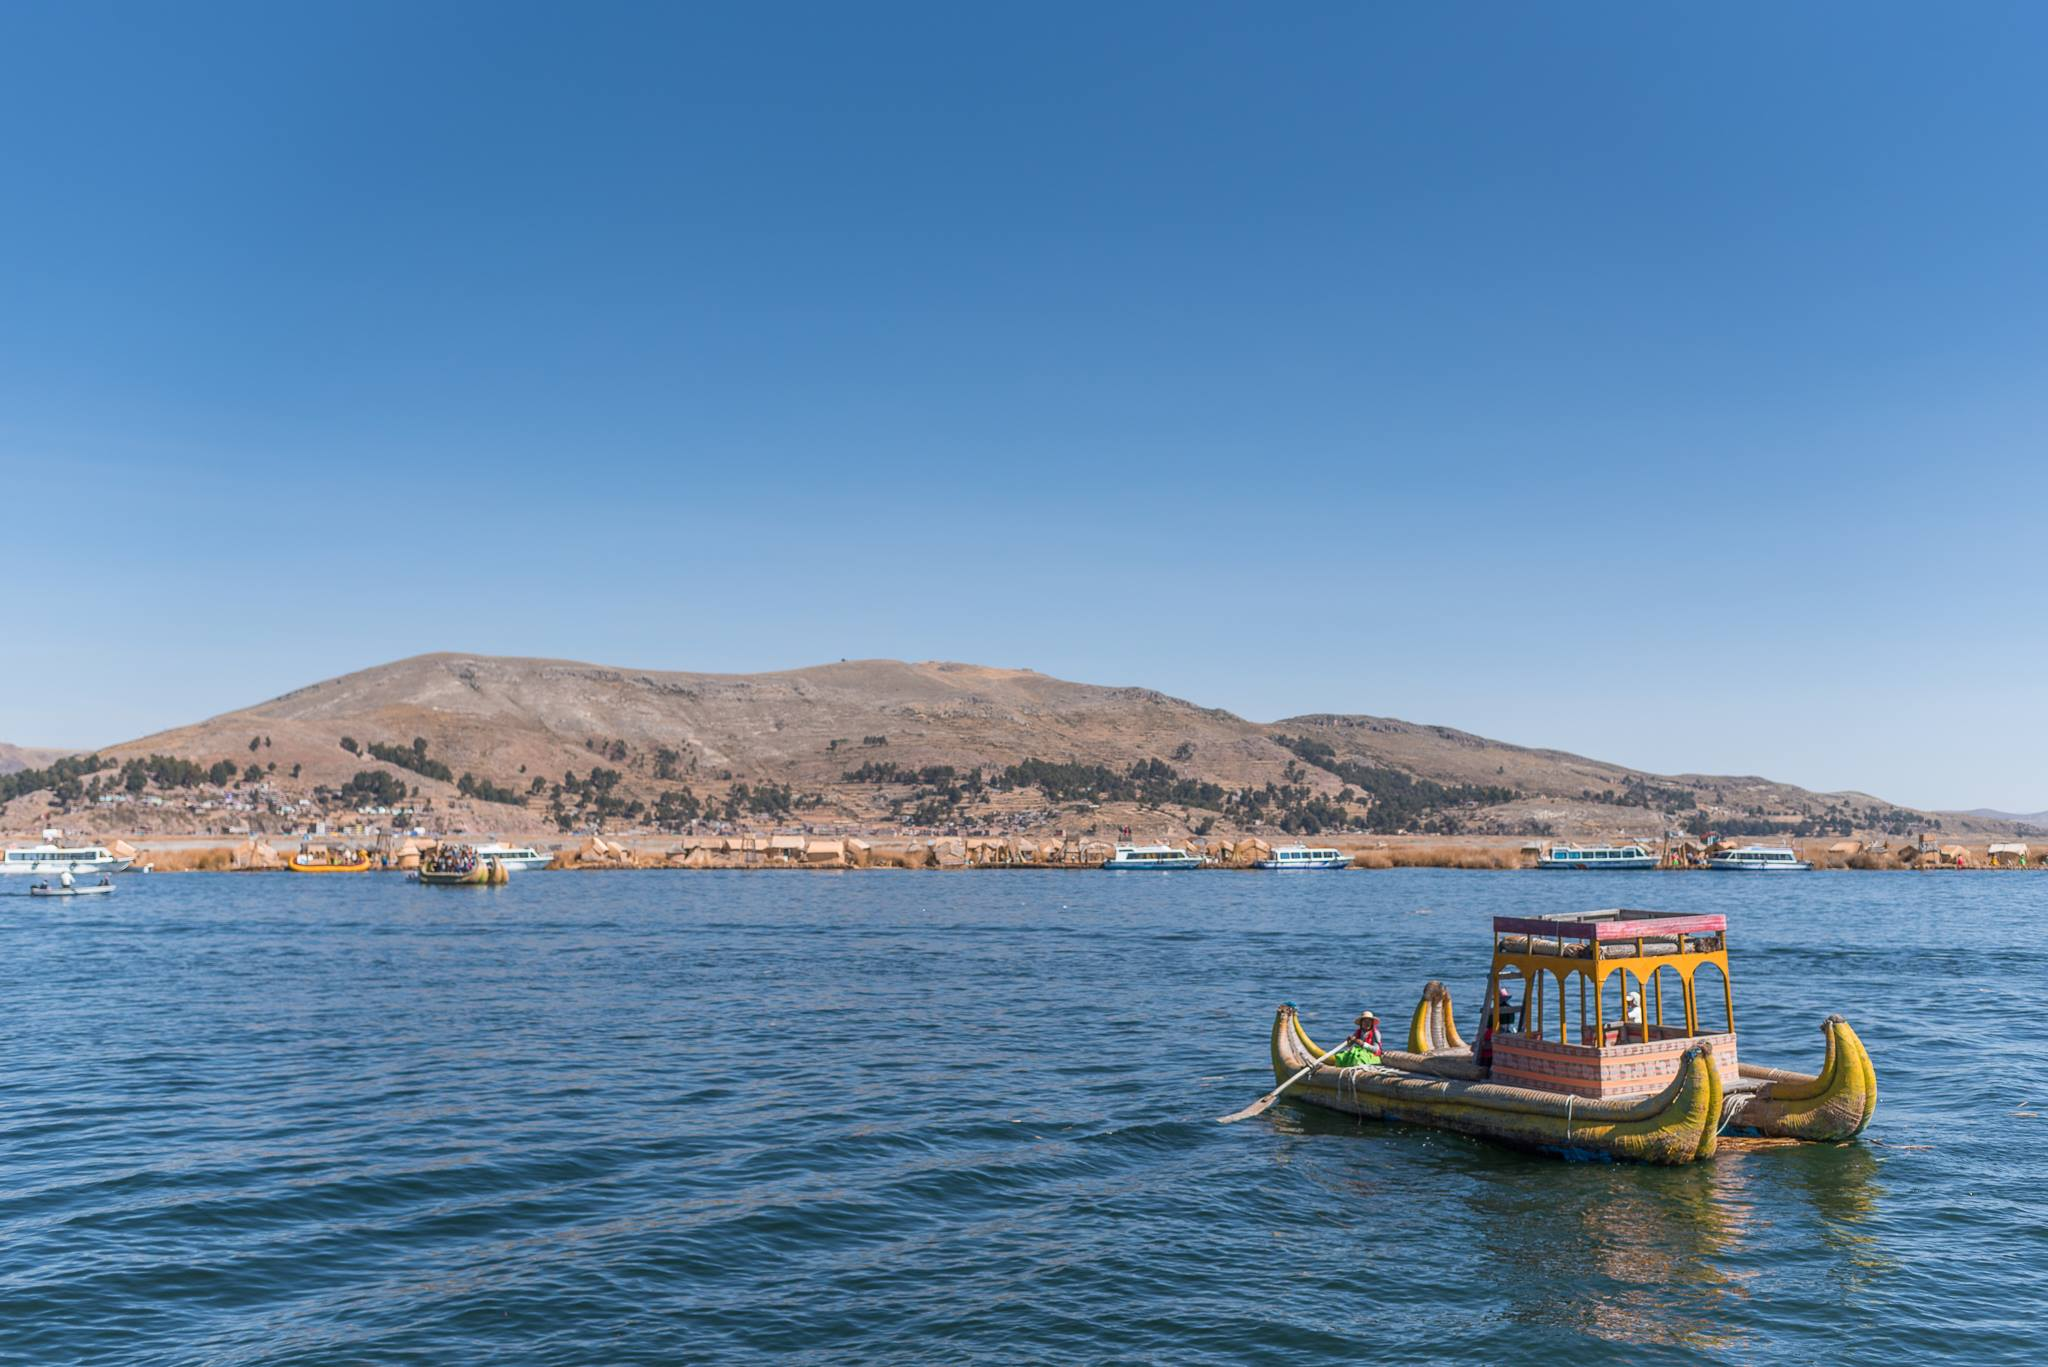 Peru's ephemeral floating islands, golden-hued and gracefully delicate, appear like a mirage in Lake Titicaca. But their origins, paradoxically, reflect the strength and tenacity of the native peoples who created them.